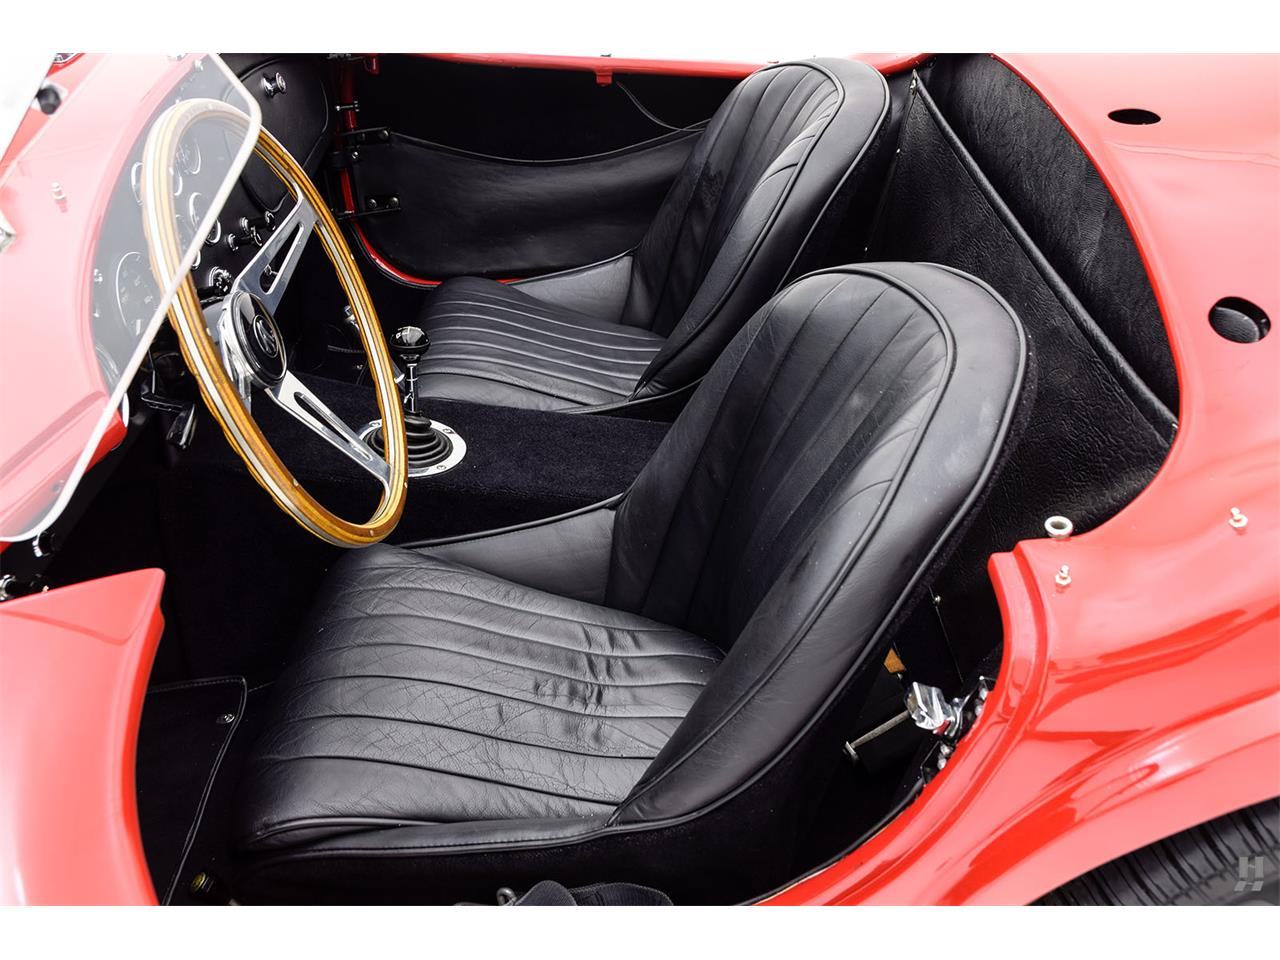 Large Picture of Classic '63 Shelby Cobra located in Saint Louis Missouri Offered by Hyman Ltd. Classic Cars - NP8S